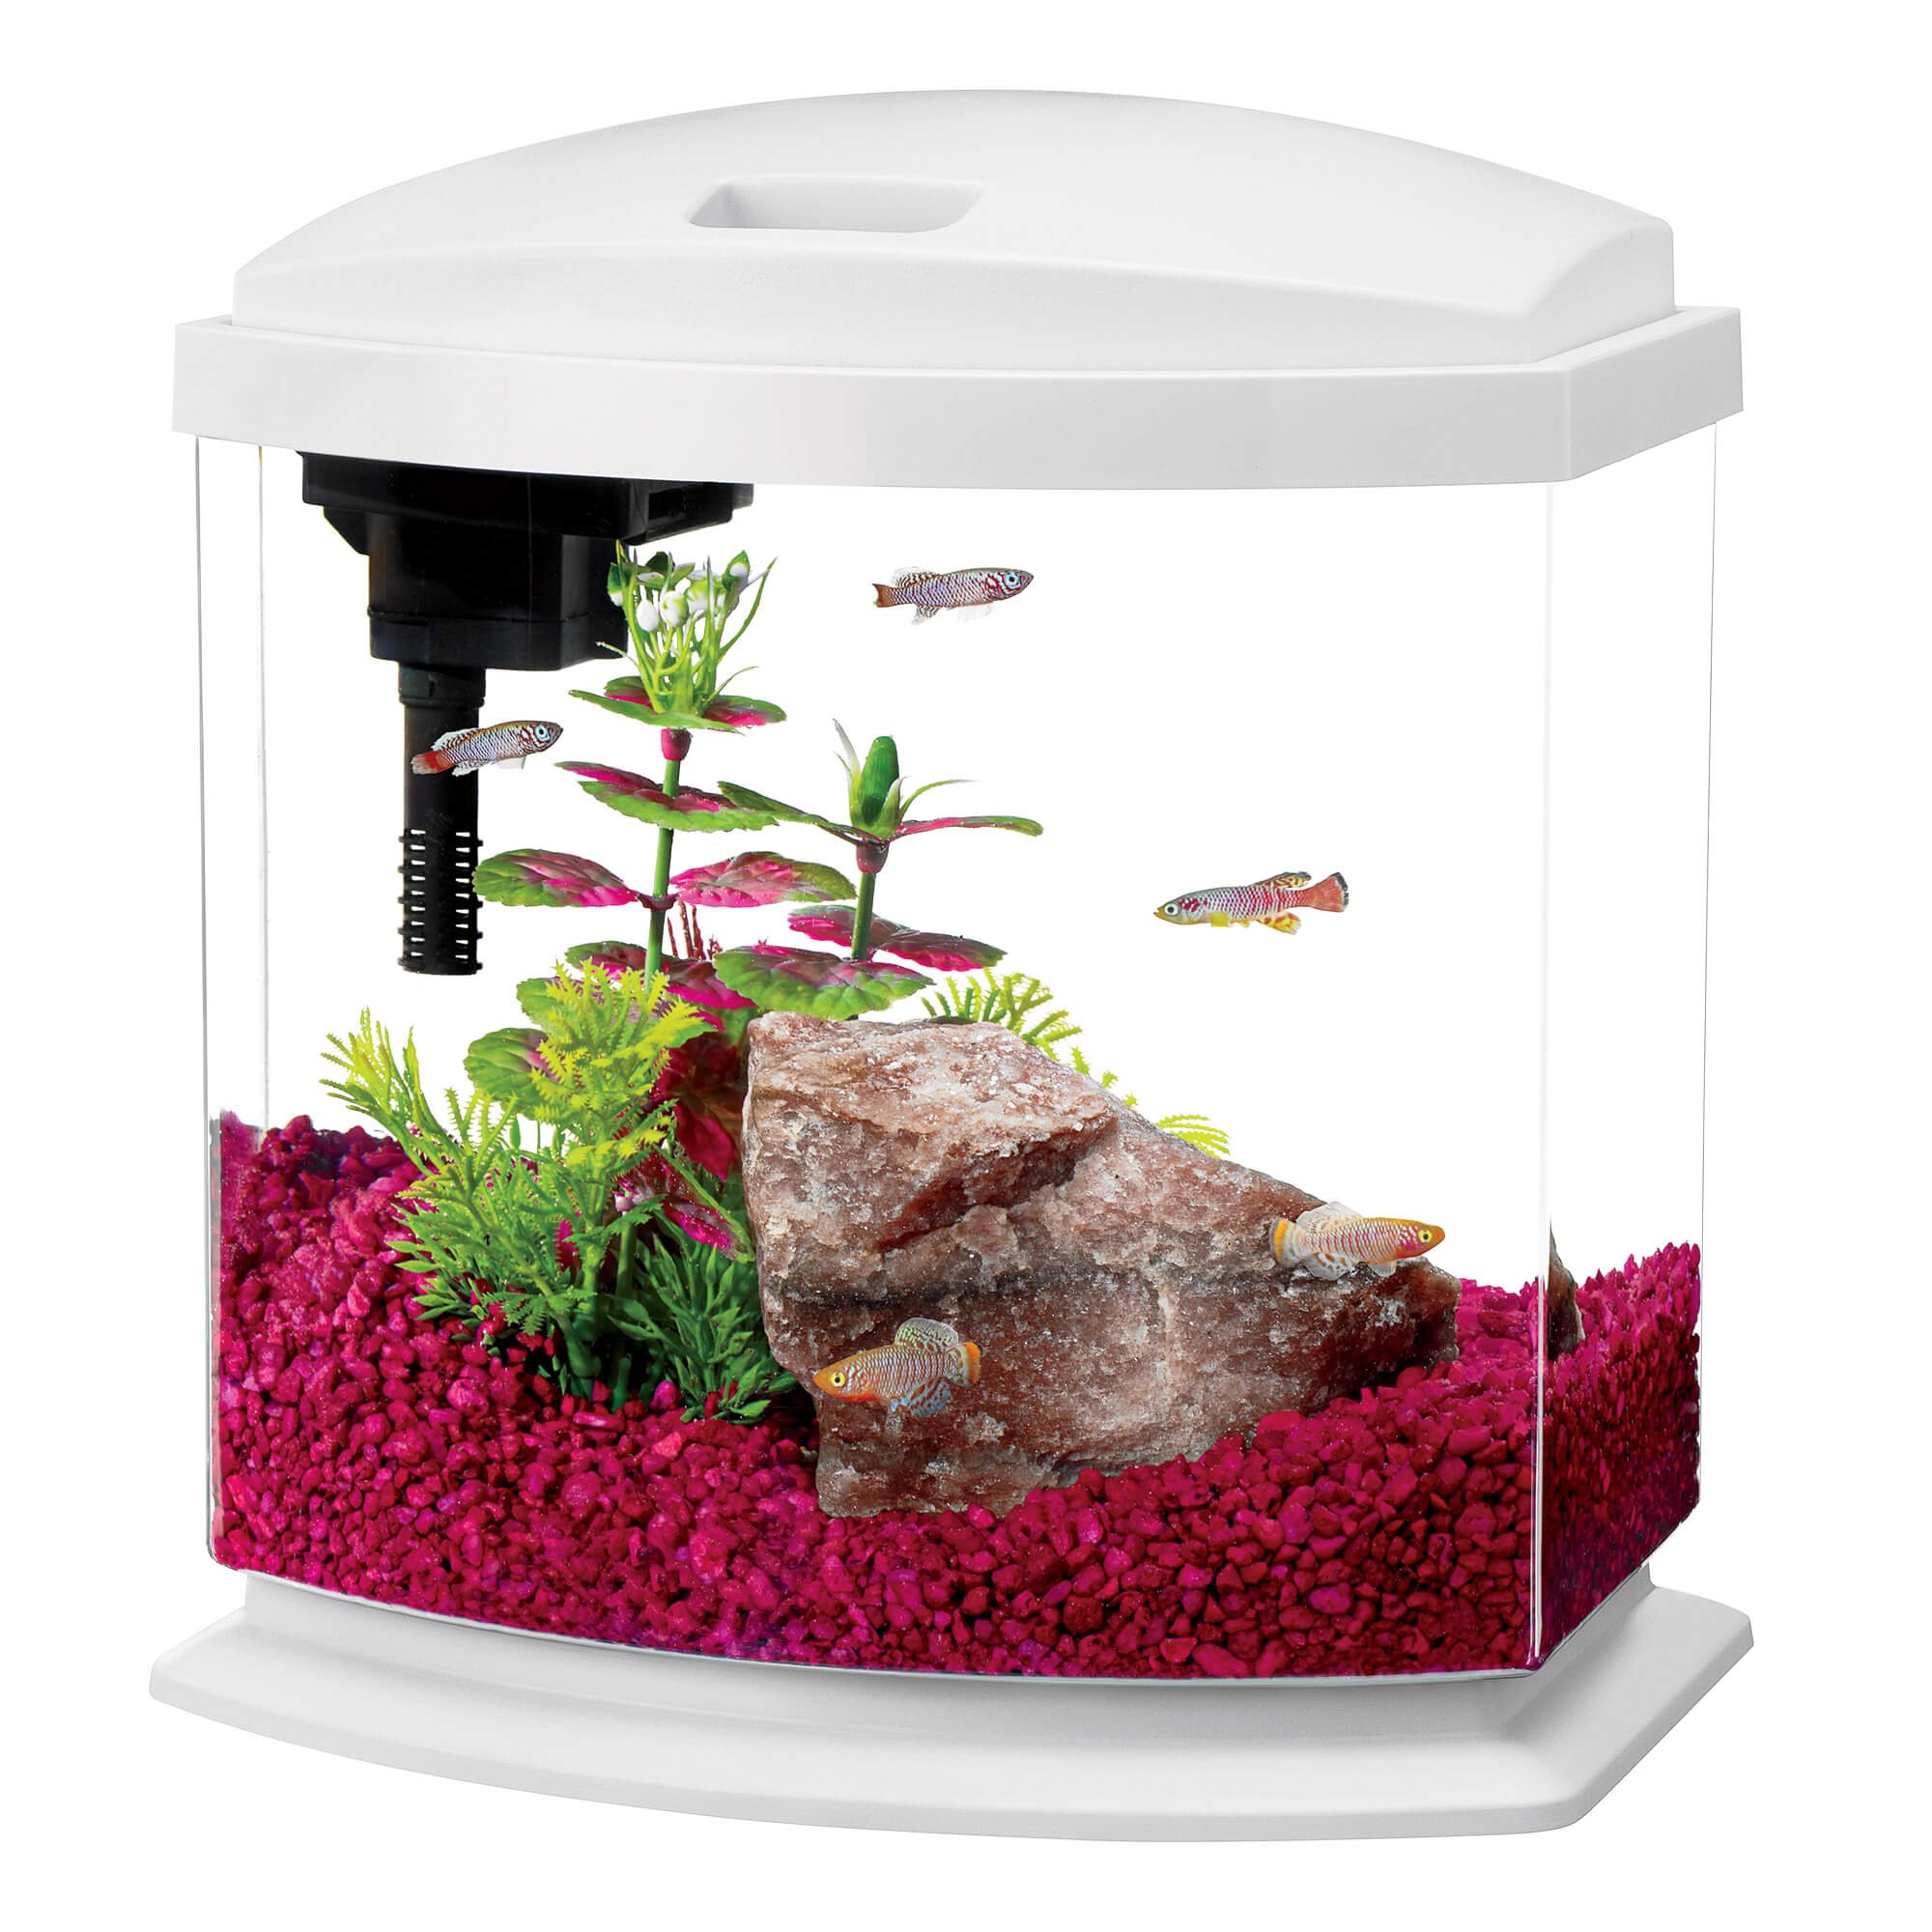 aqueon minibow led desktop fish aquarium kit in white petco. Black Bedroom Furniture Sets. Home Design Ideas